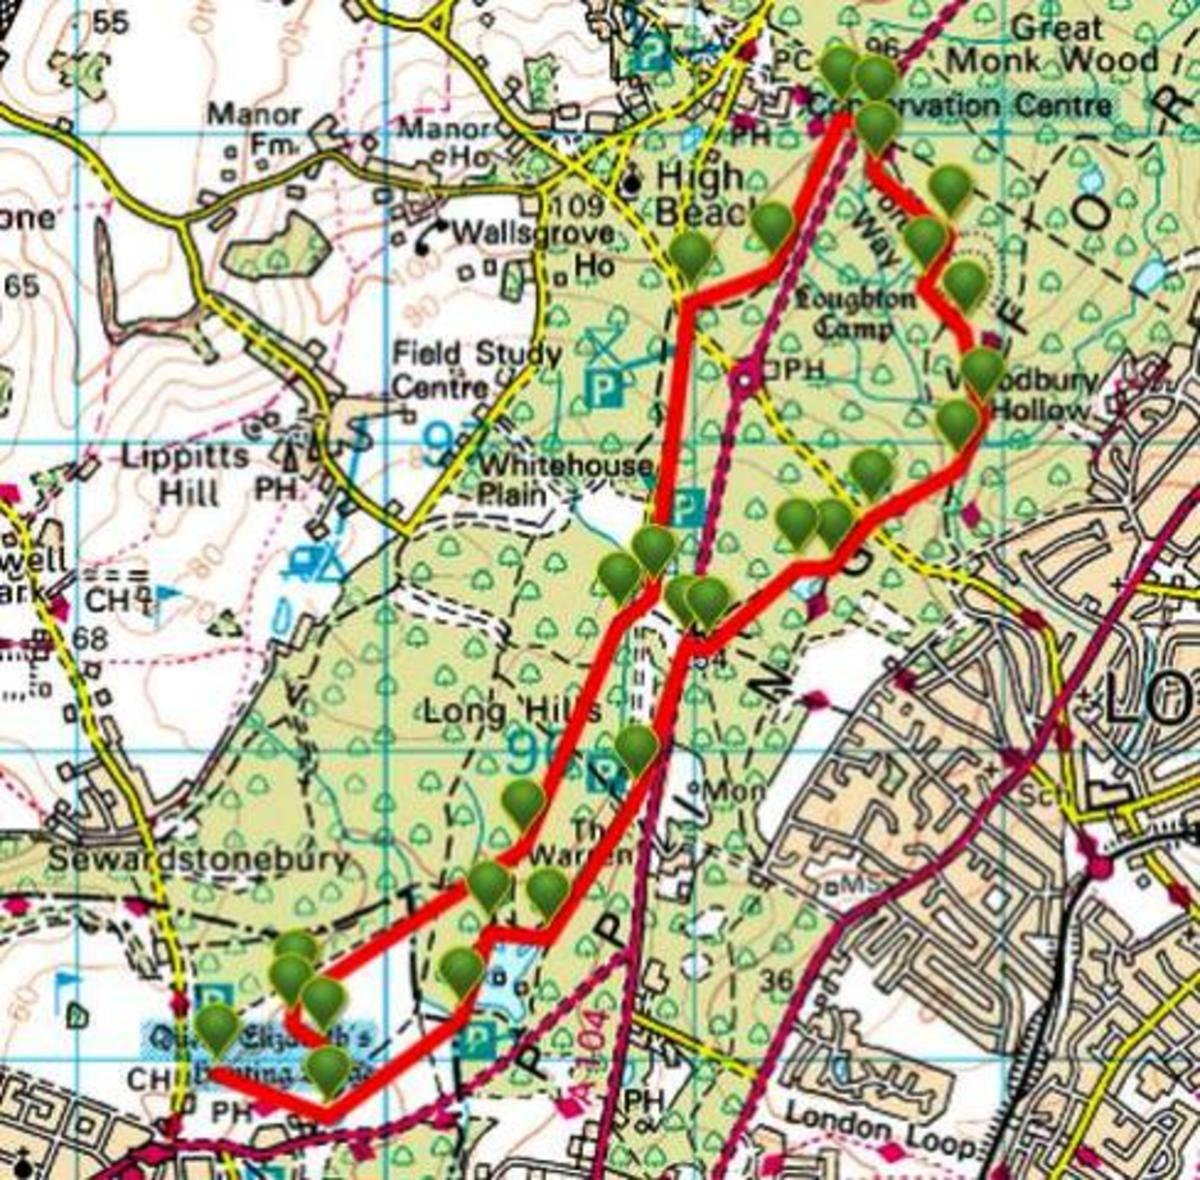 ViewRanger map of walks and walk features in the area of Epping Forest featured on this page